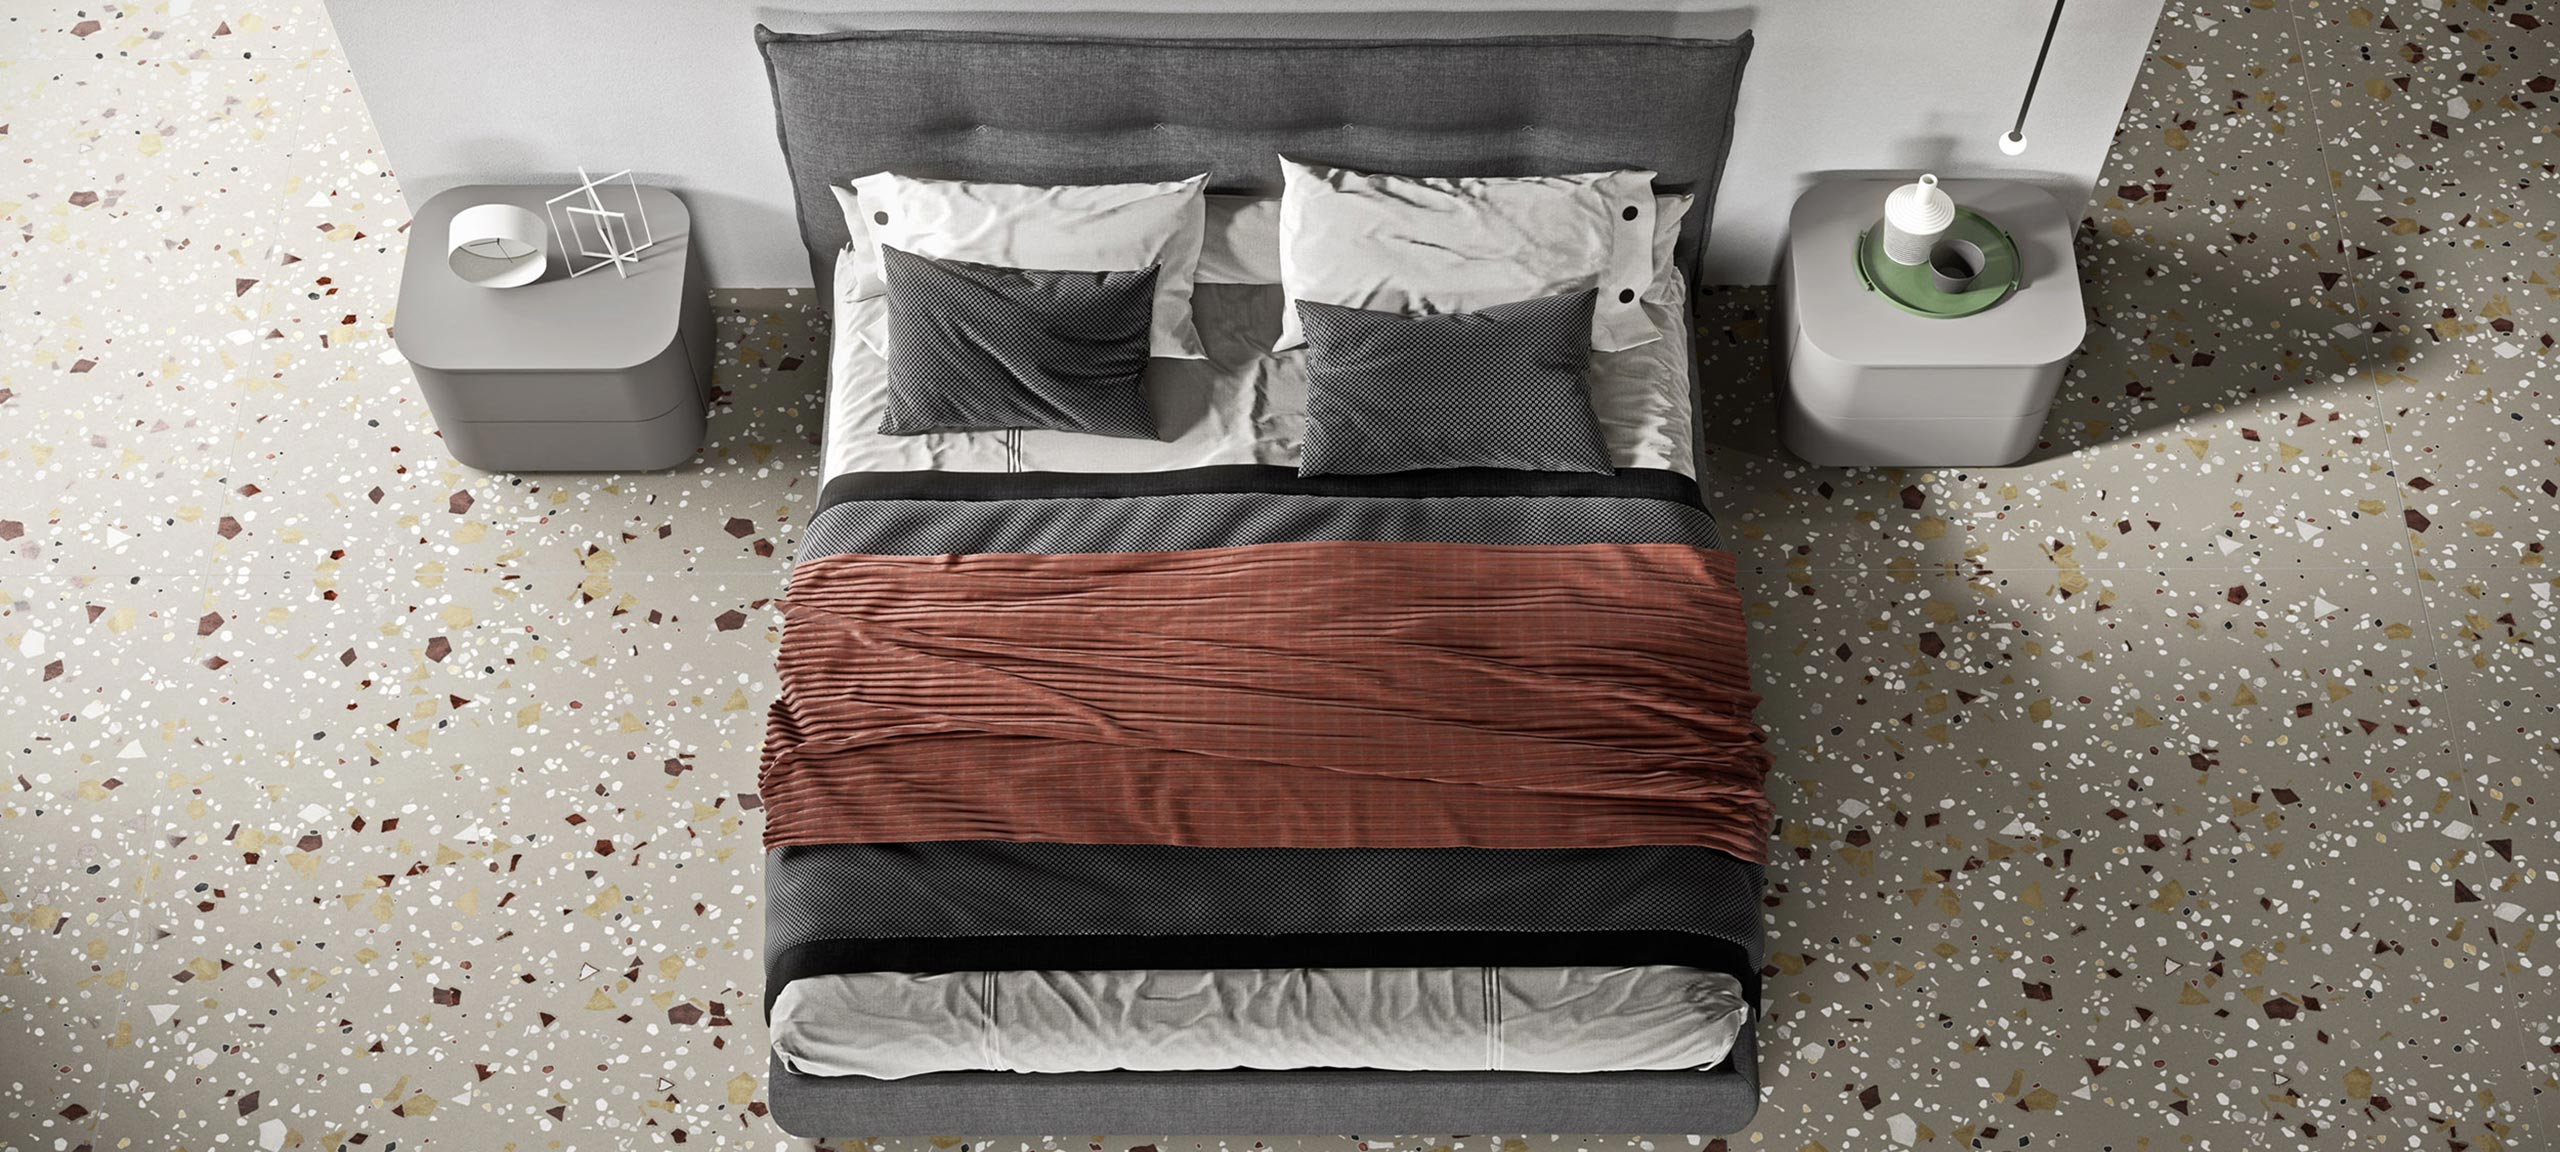 fabric-lined double bed with container 3